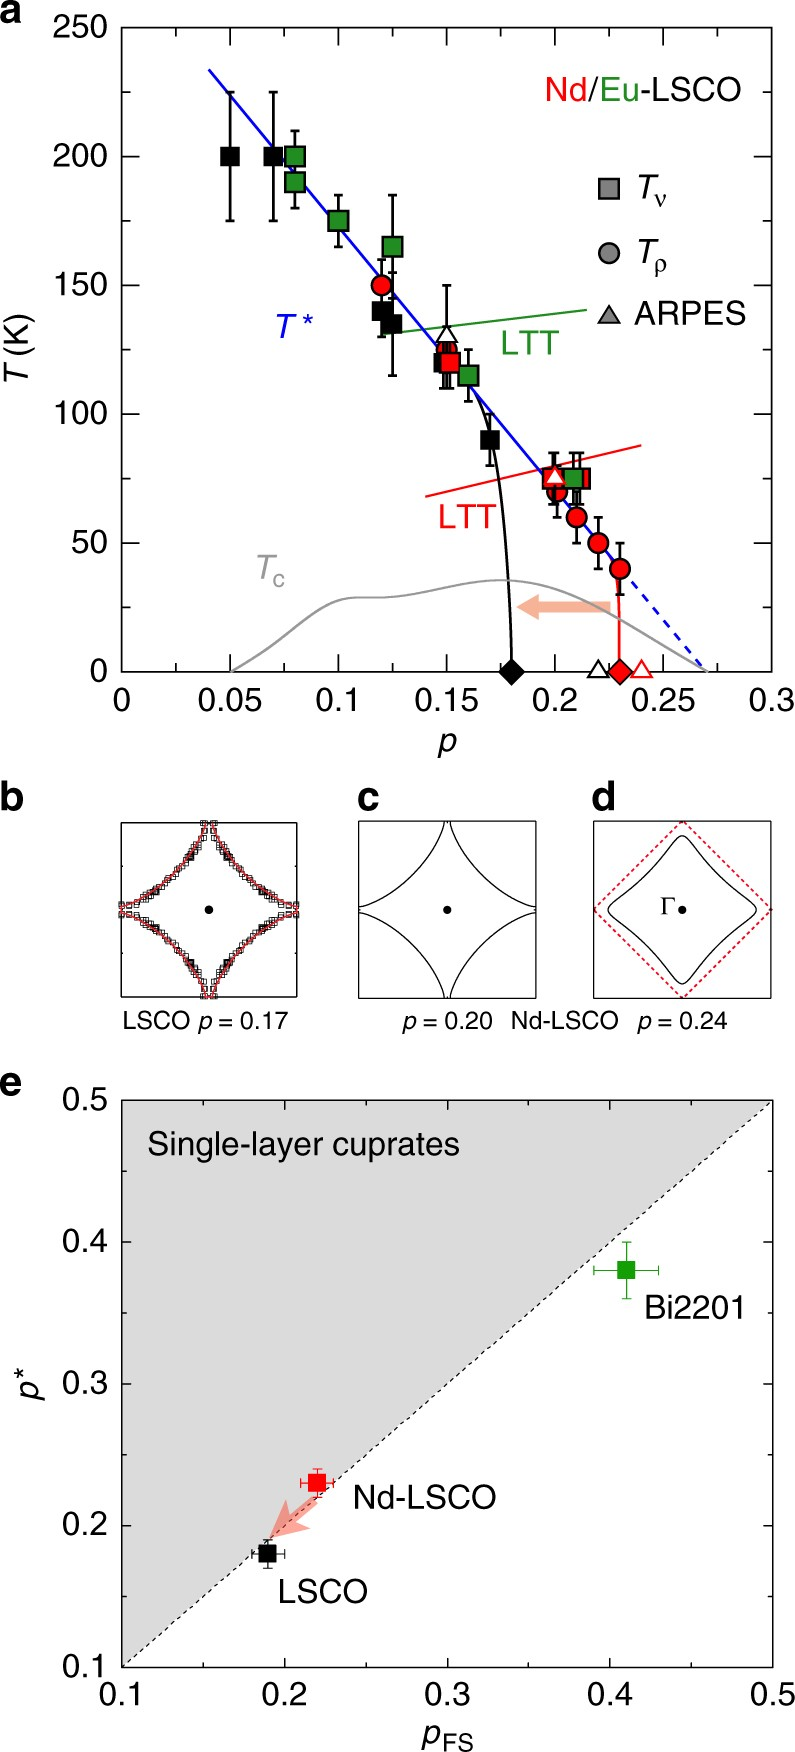 Pseudogap Phase Of Cuprate Superconductors Confined By Fermi Surface 7474 Pin Diagram Topology Nature Communications